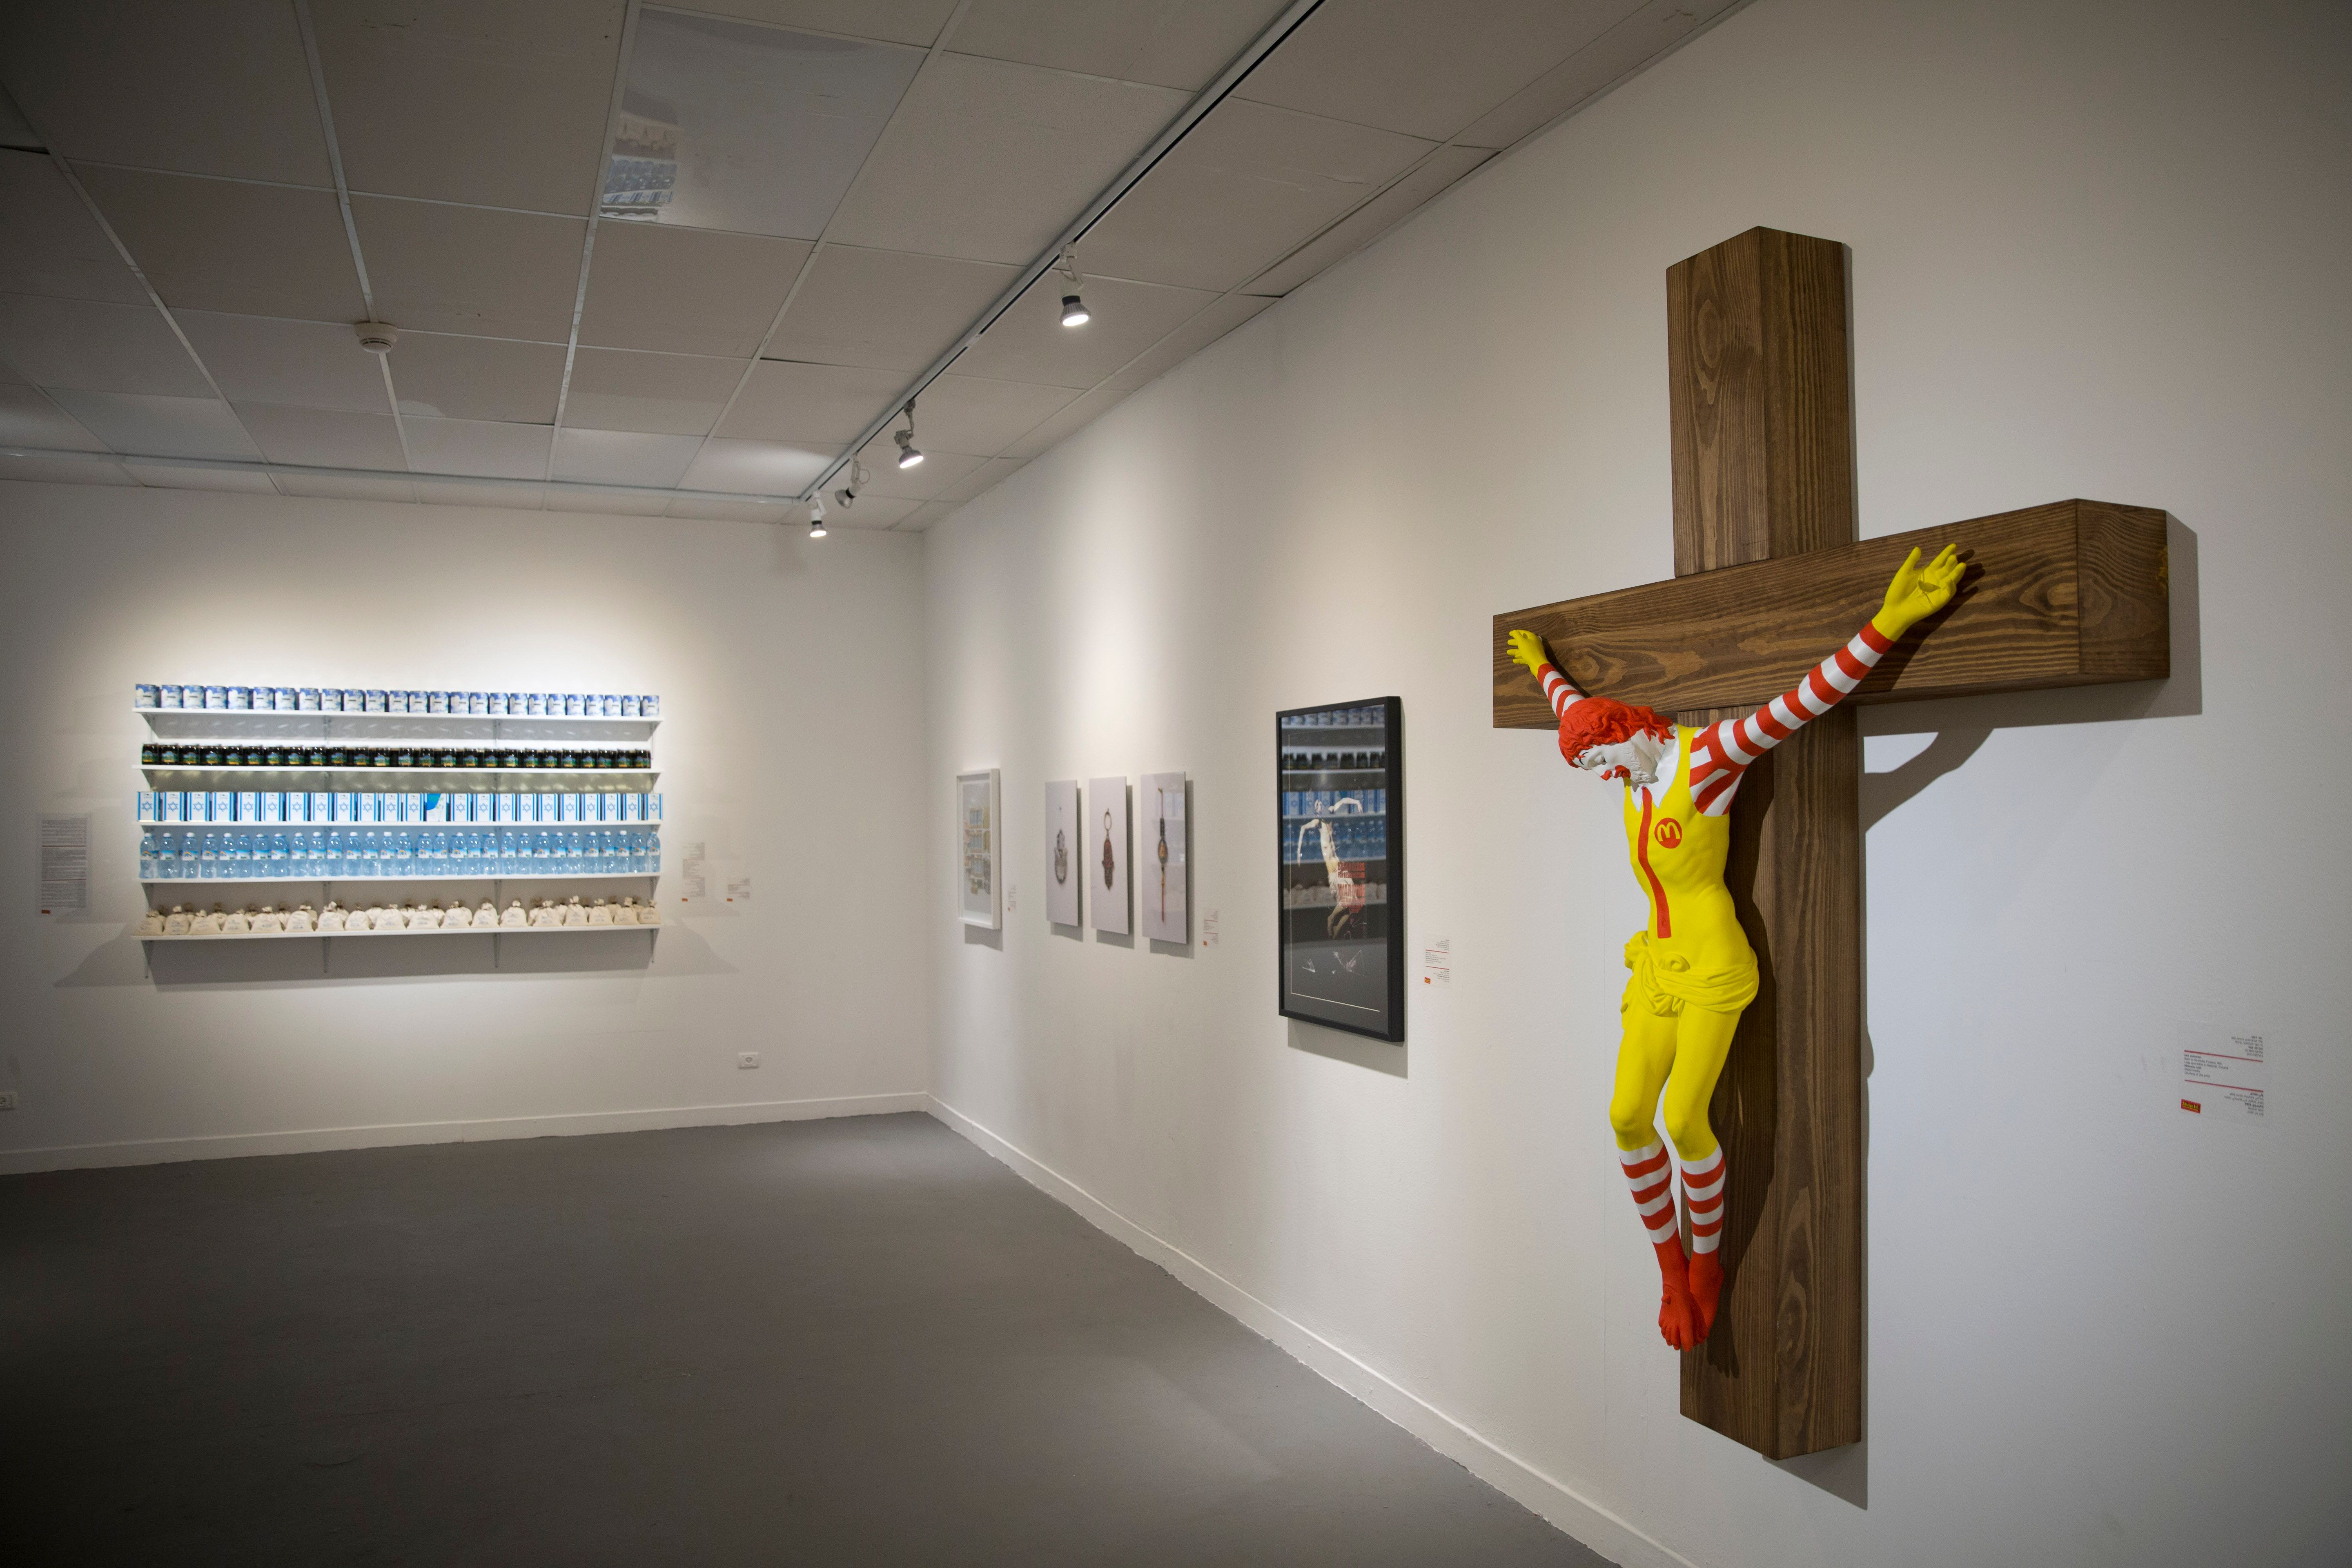 Crucified Ronald Mcdonald Sculpture Sparks Protests In